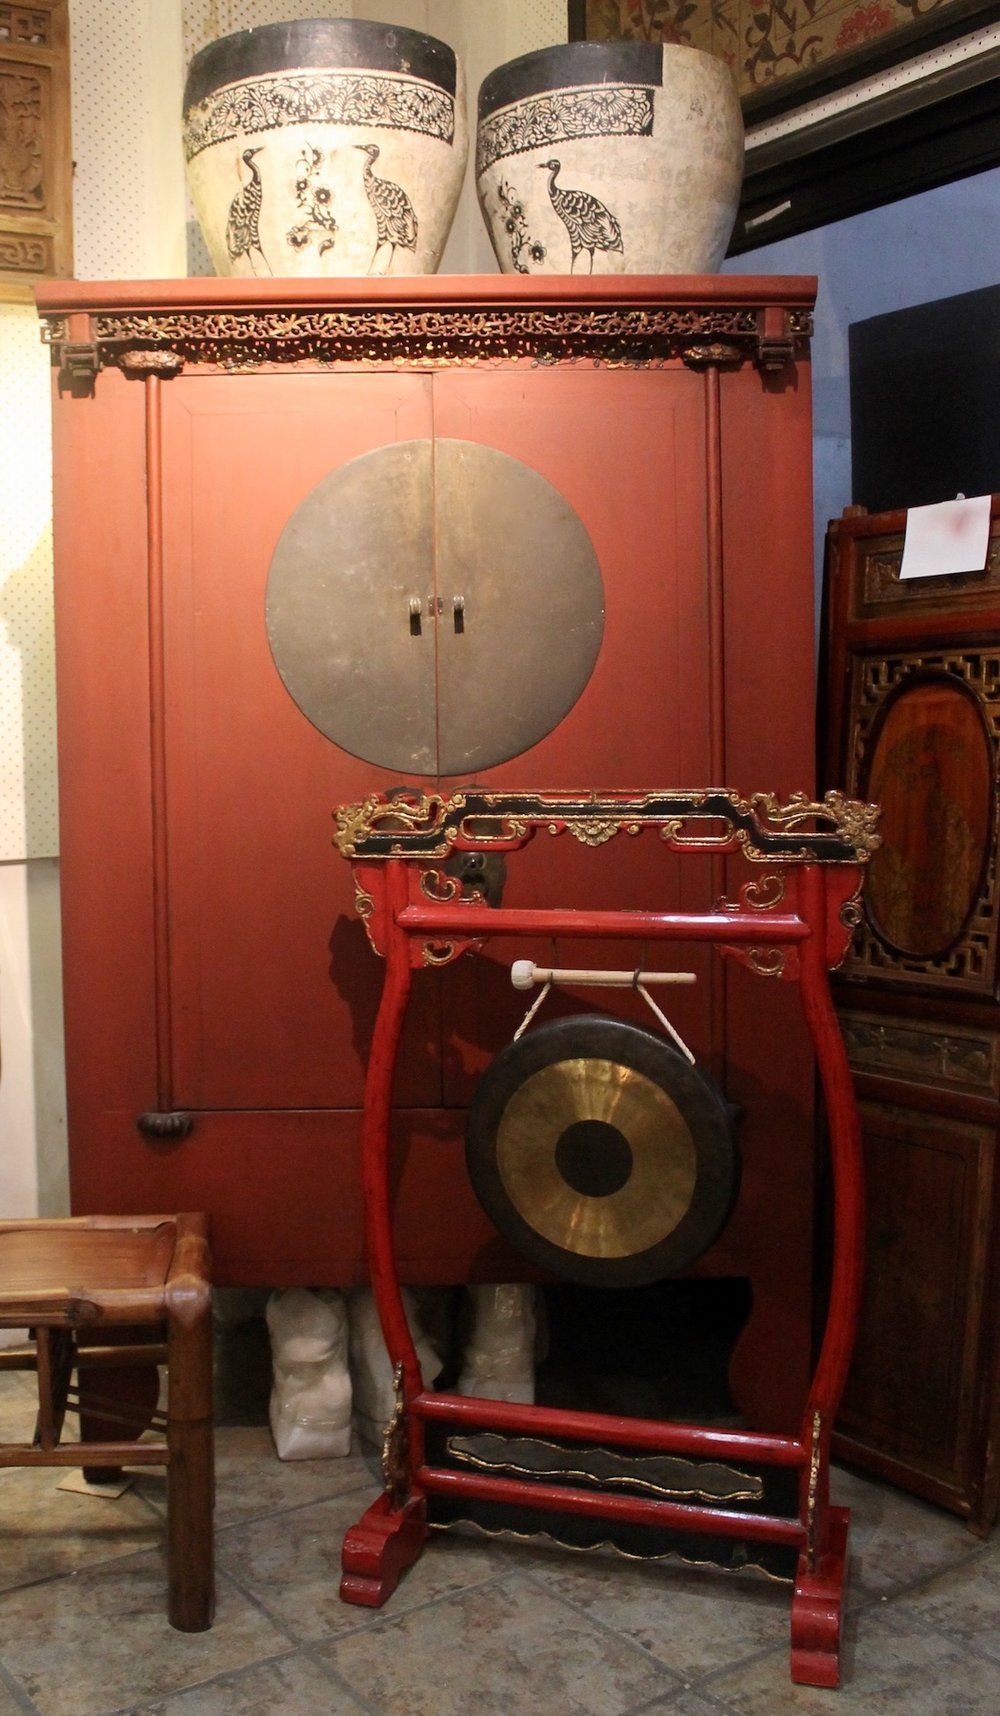 Main: Antique red & gold wedding cabinet with carving. Left: bamboo stool; right: Gong with stand (reproduction).